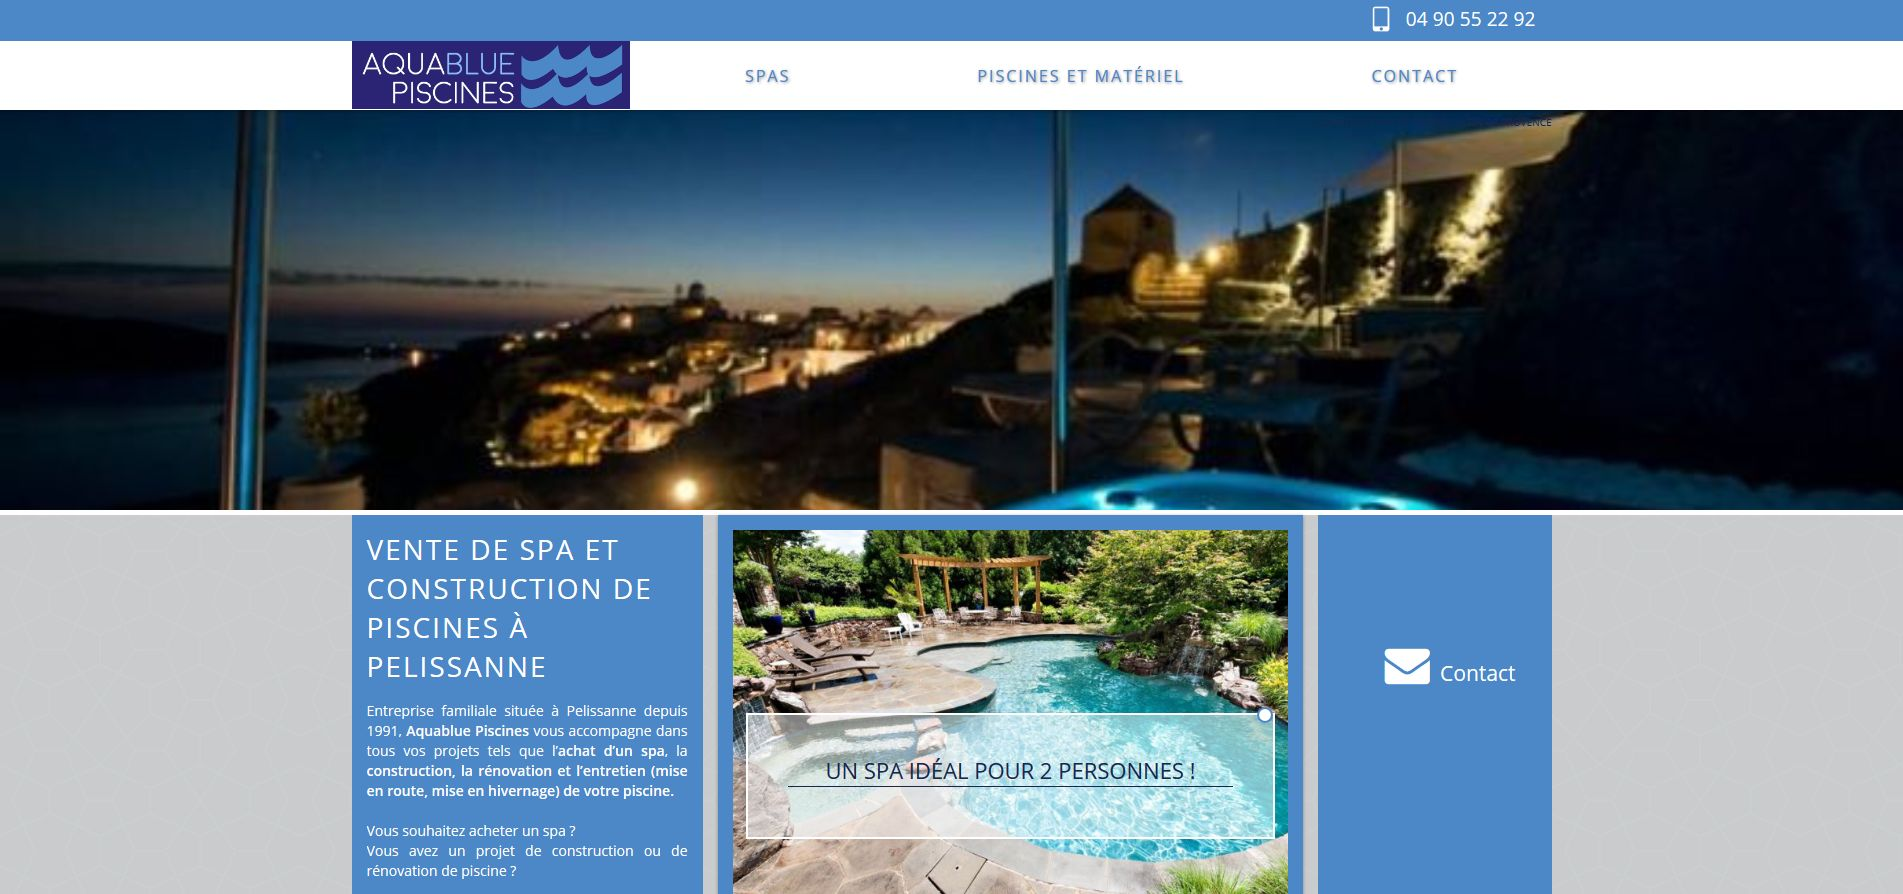 Vente de spas salon de provence aquablue piscines - Agence de communication salon de provence ...